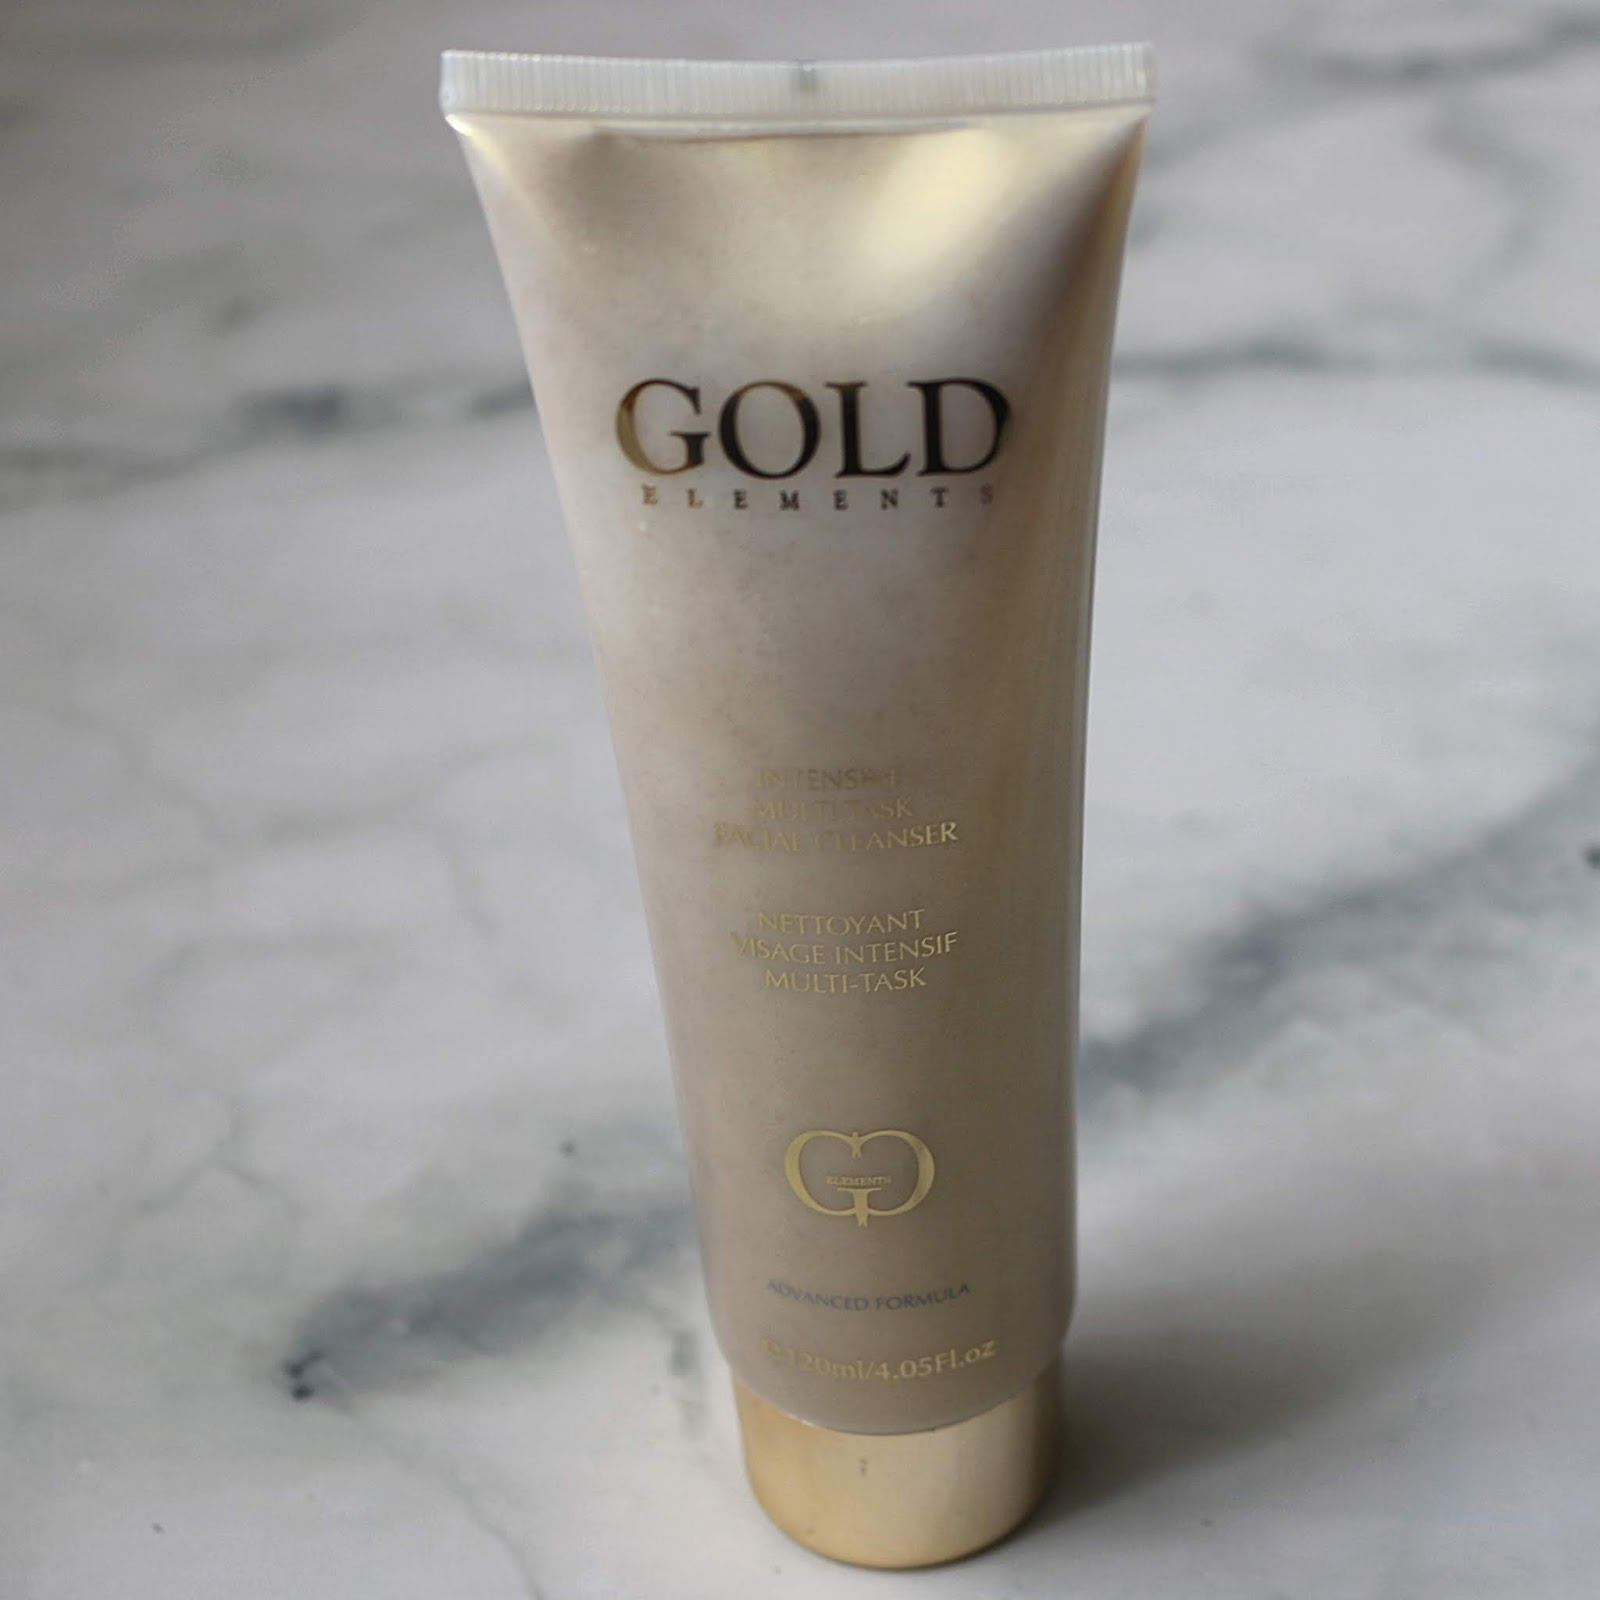 Gold Elements Intensive Multi Task Facial Cleanser